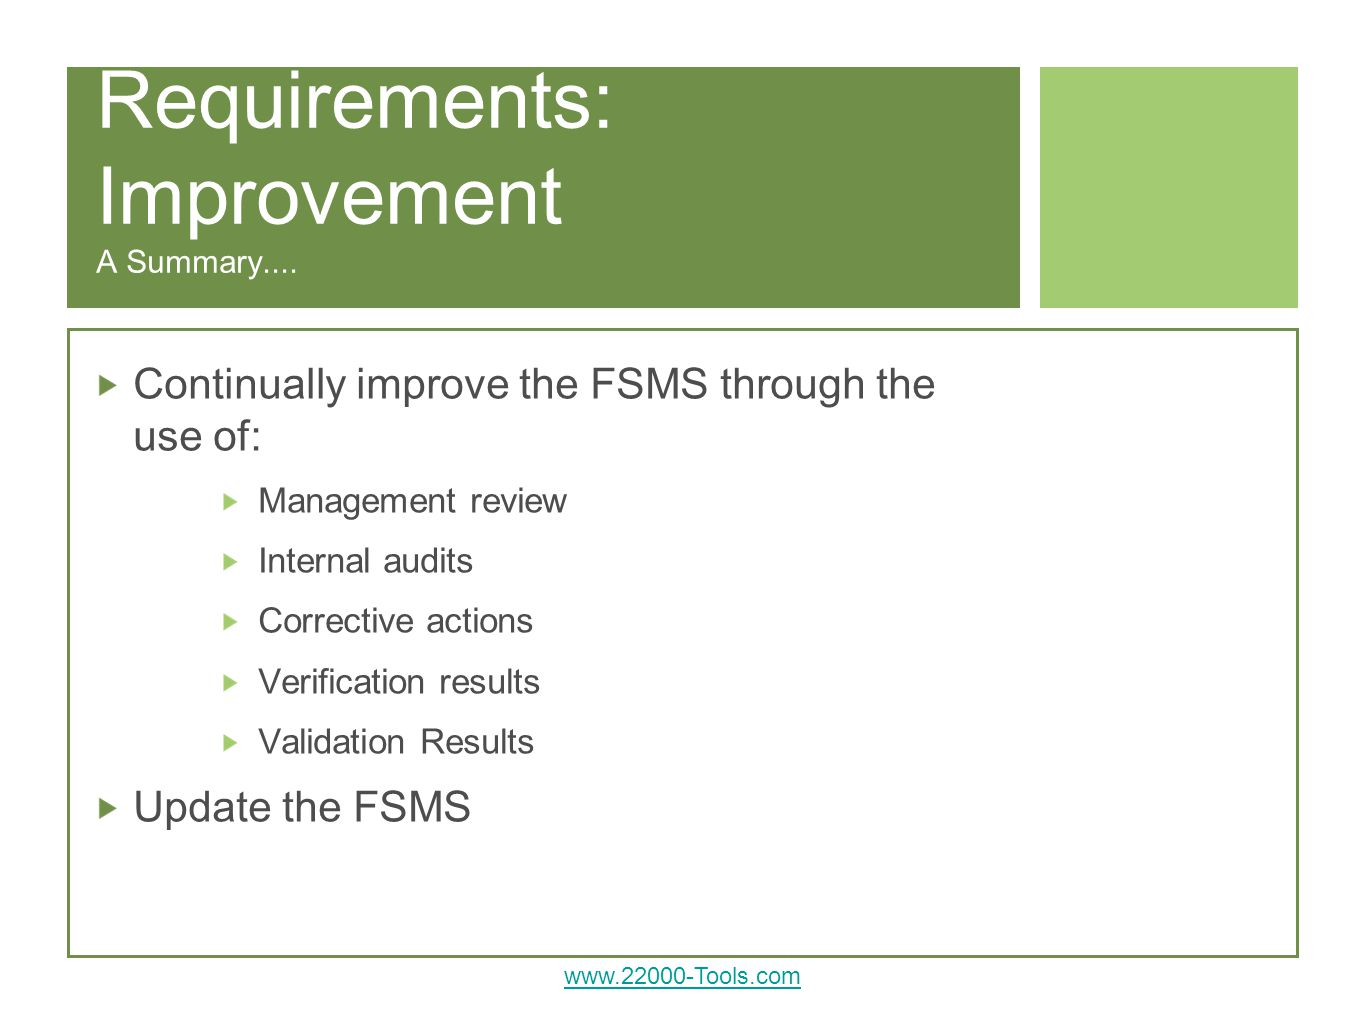 Requirements: Improvement A Summary....